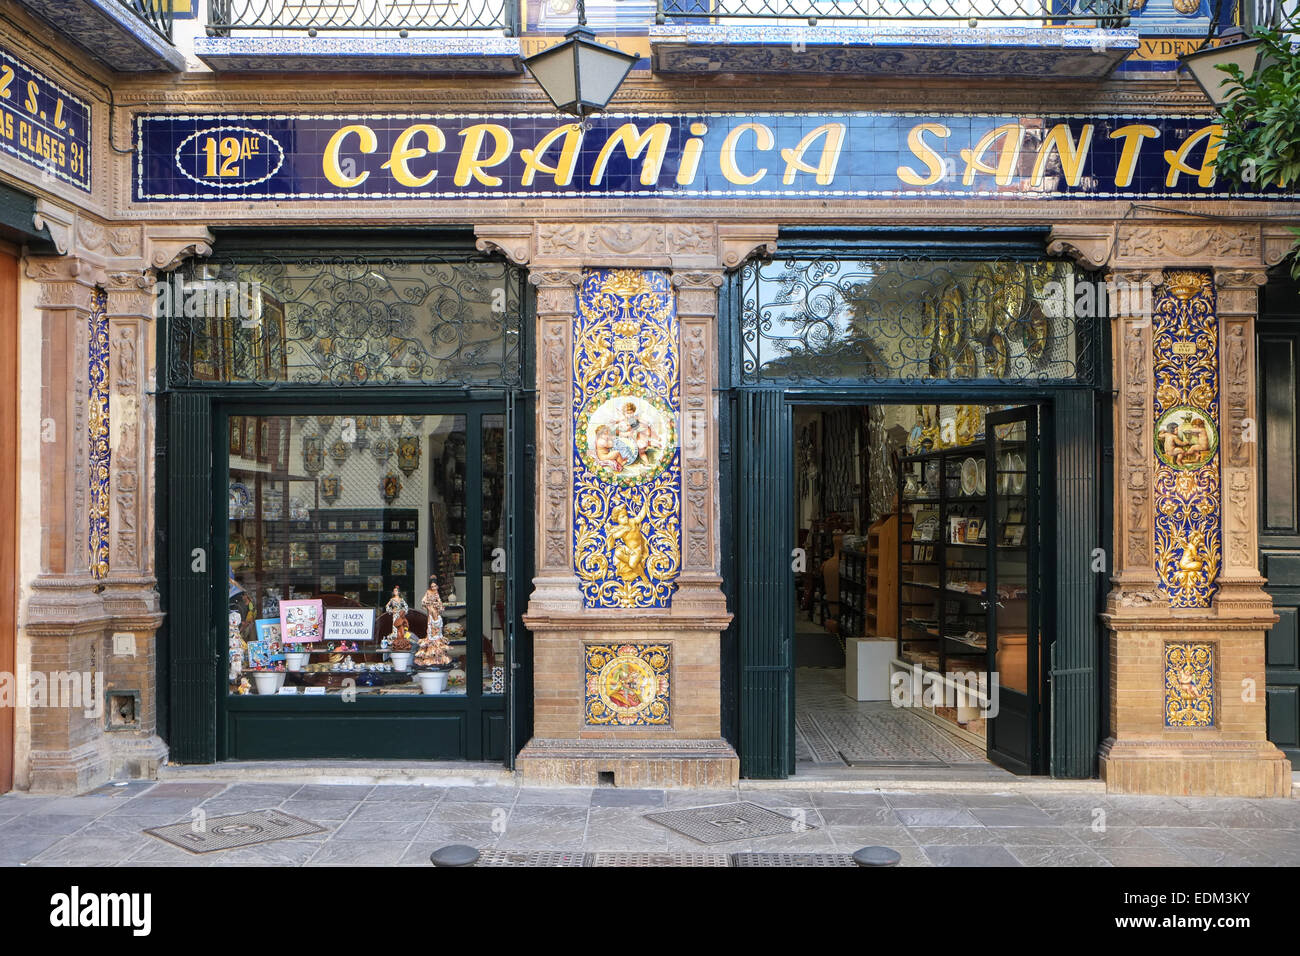 Spain Ceramic Tiles Shop Ceramica Stock Photos Spain Ceramic Tiles